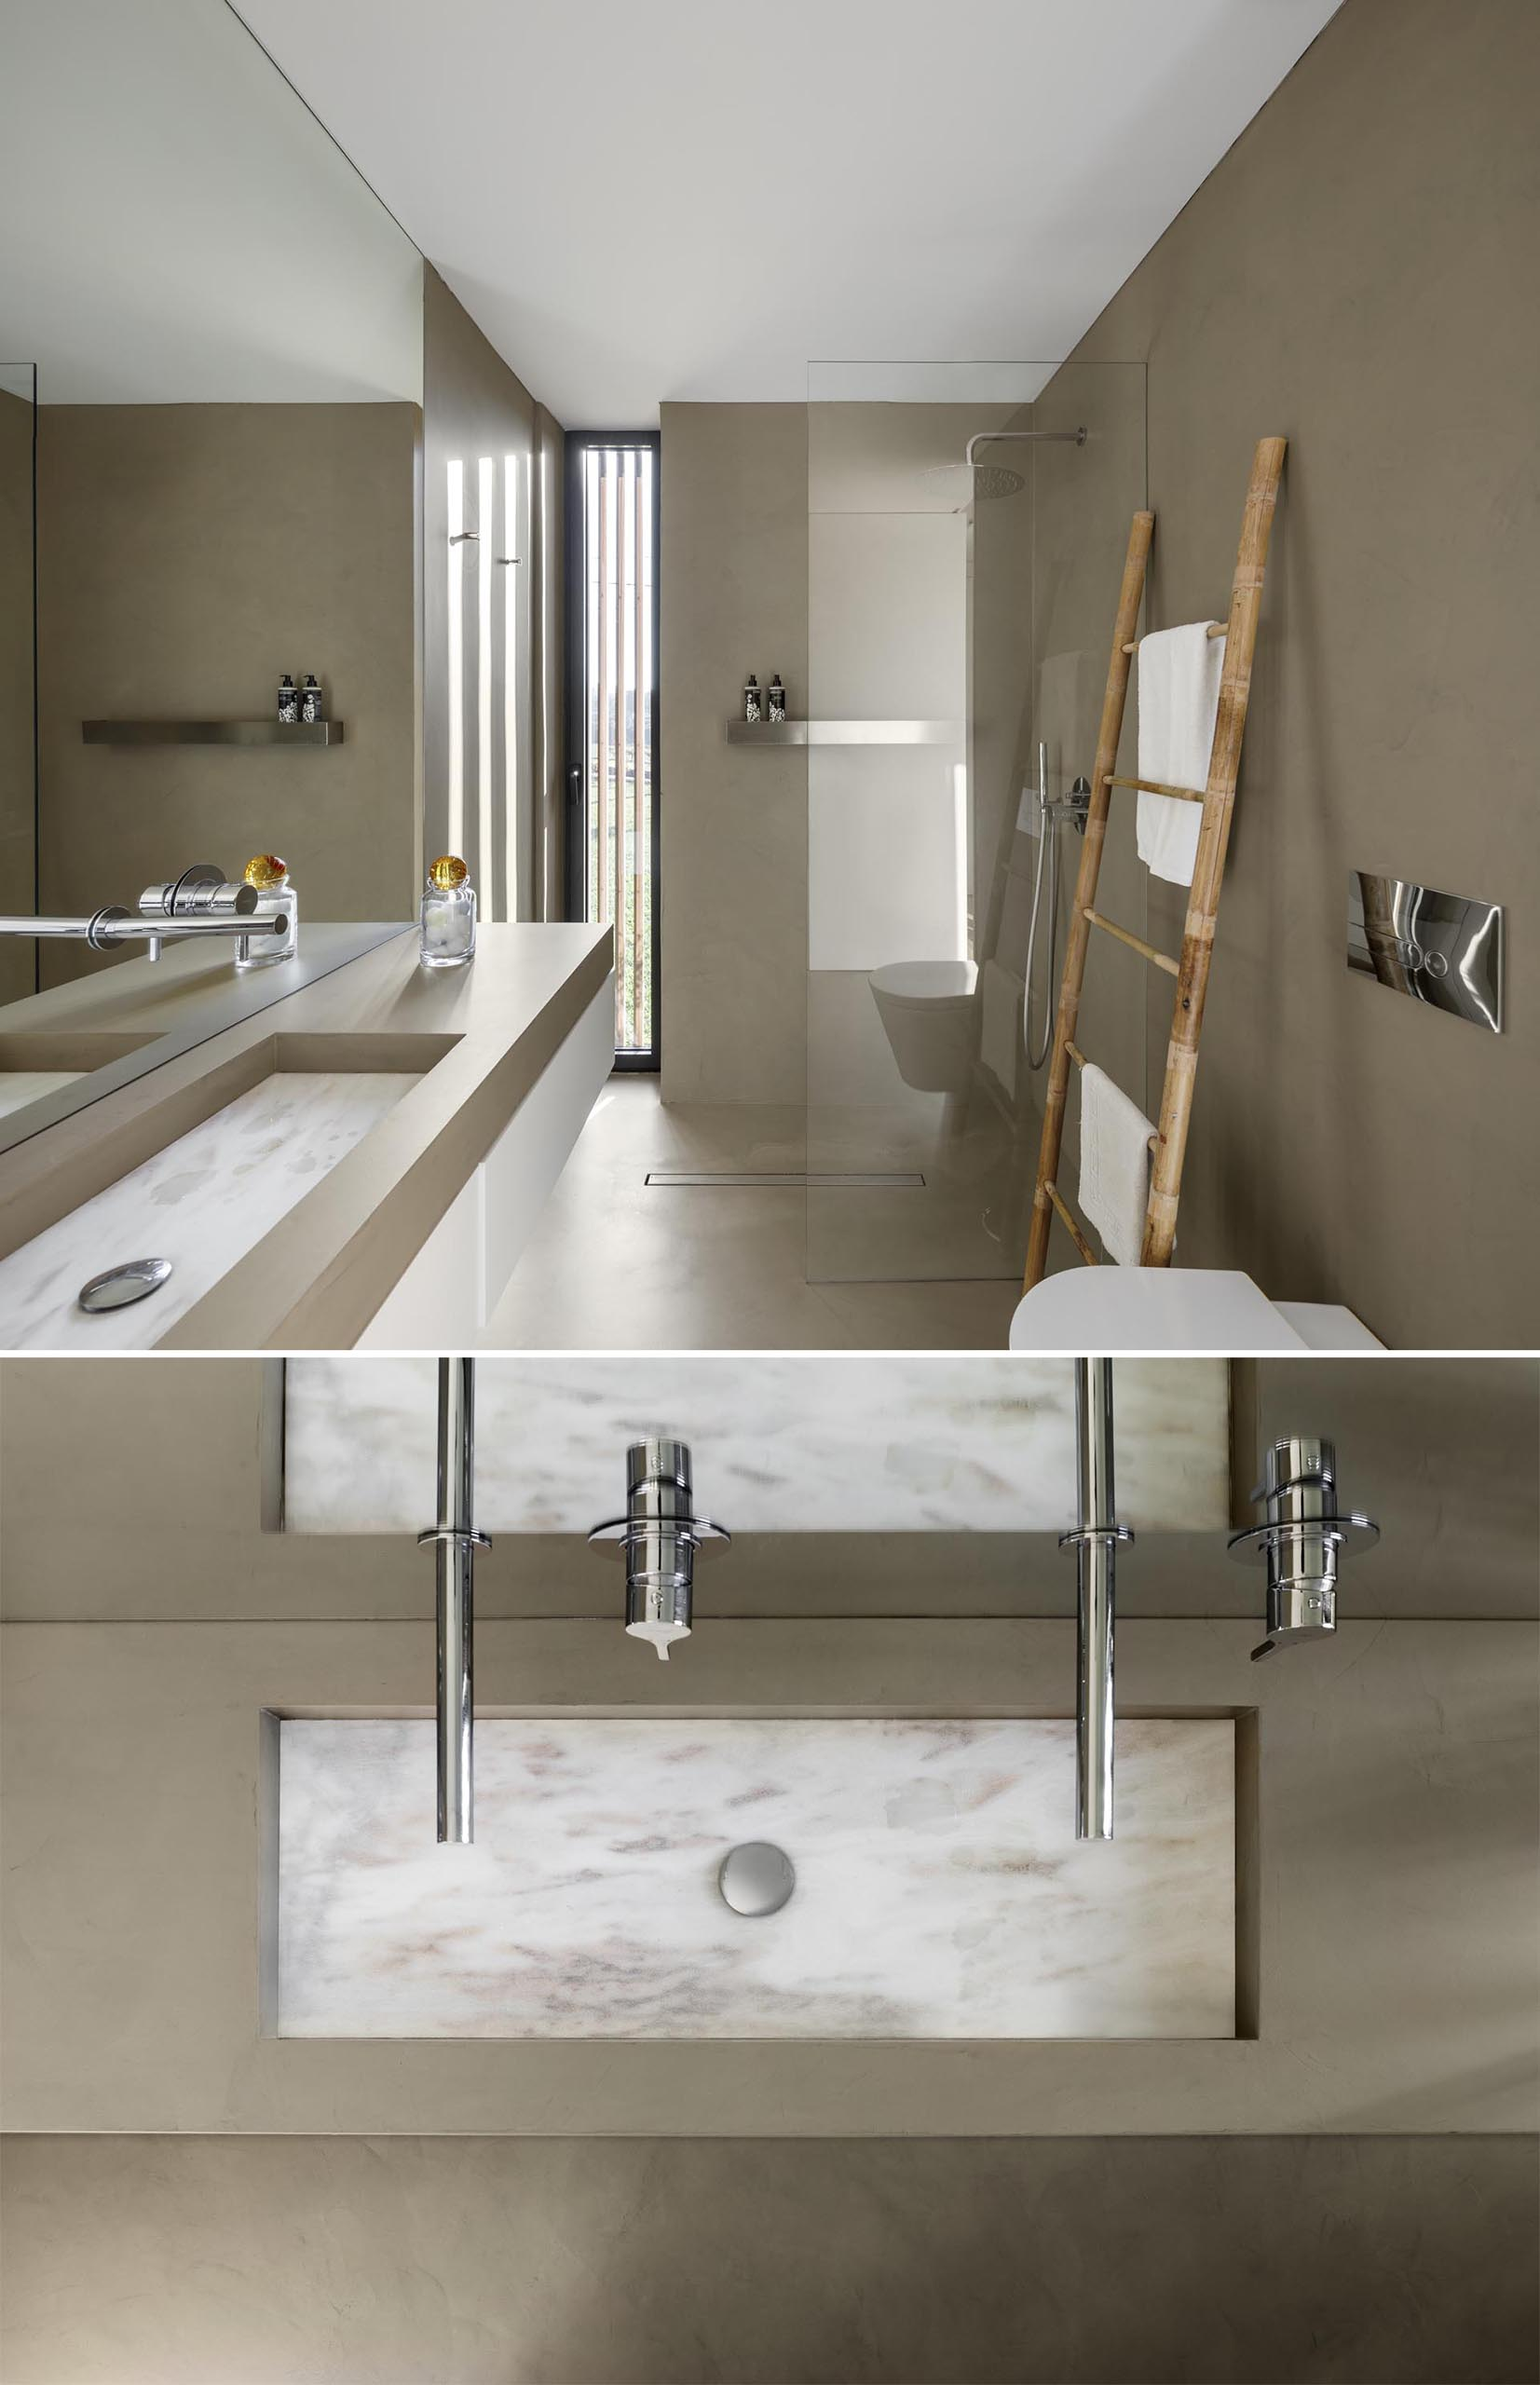 A modern bathroom with tan walls and a floating vanity with a built-in sink.